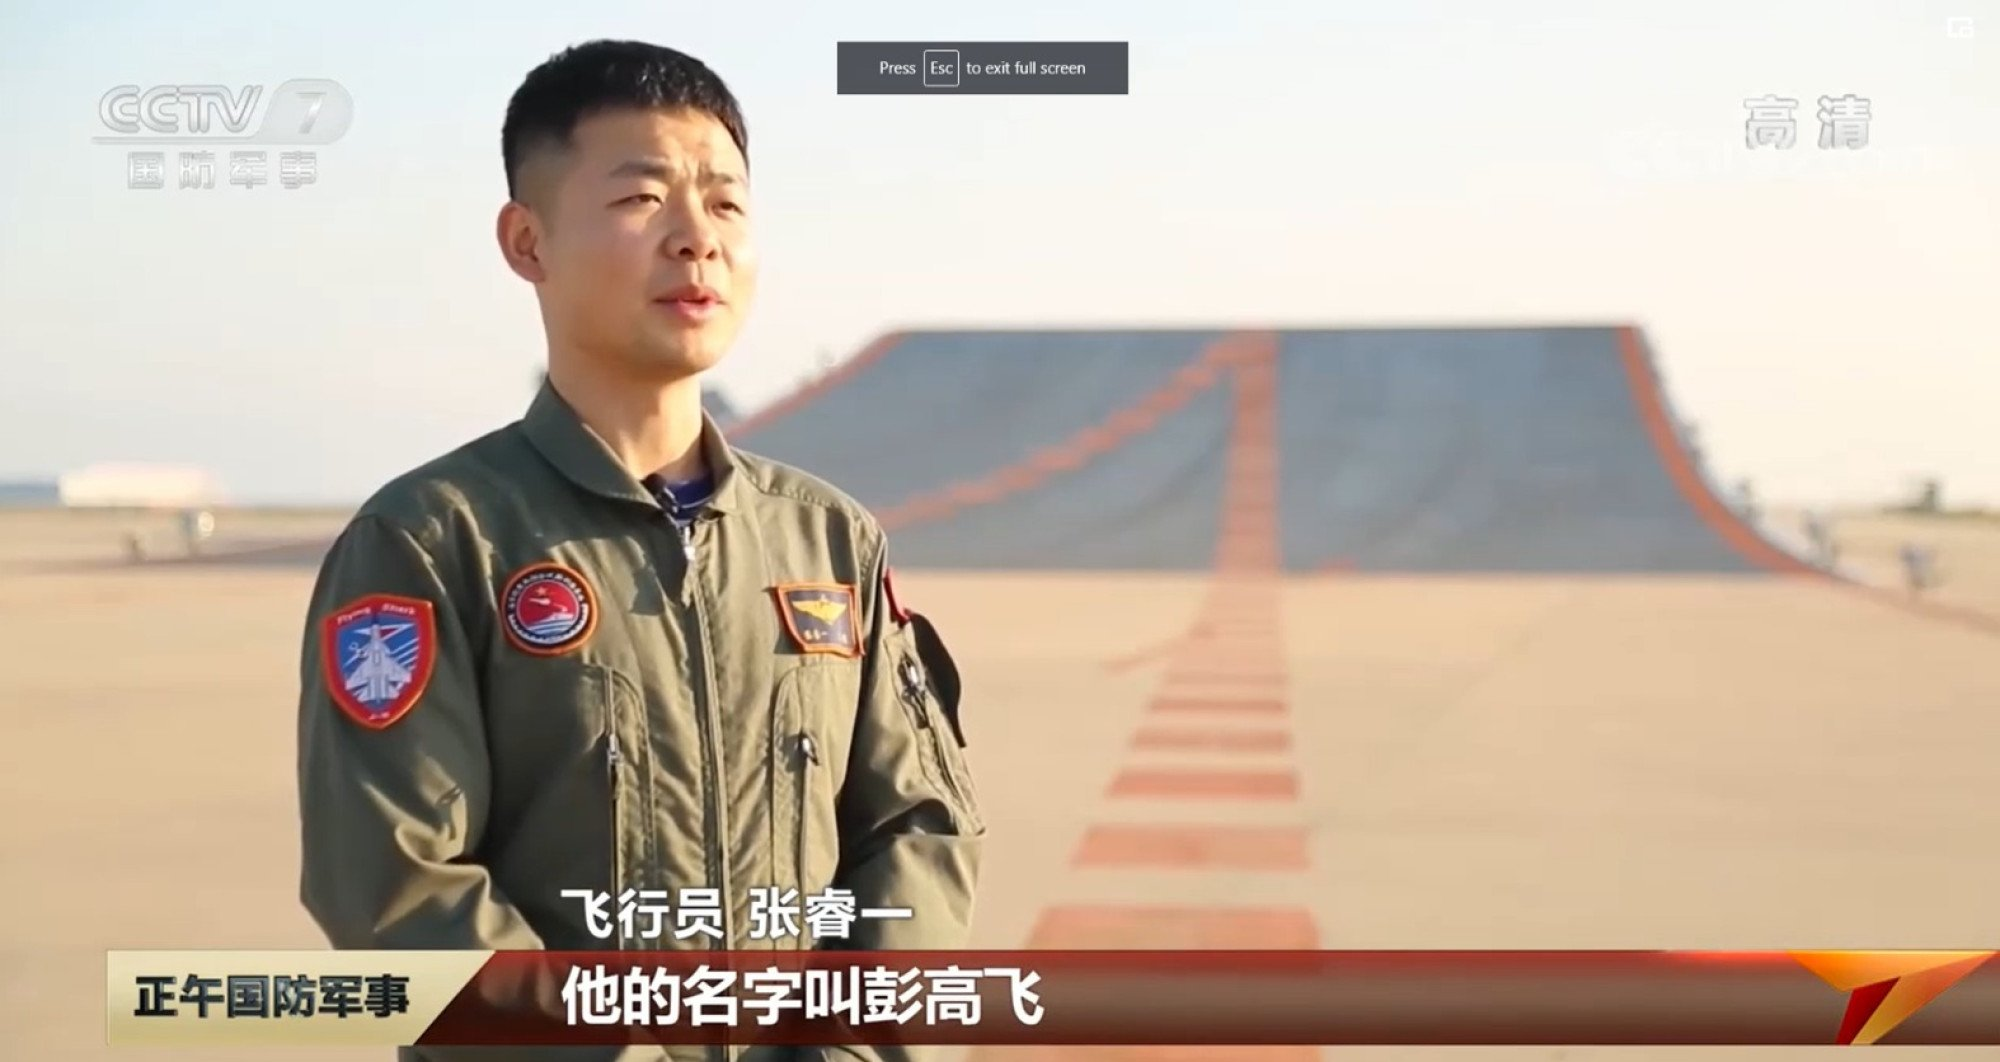 PLA pilot Peng Gaofei was killed in a crash during a flight exercise from the Shandong last year. Photo: CCTV